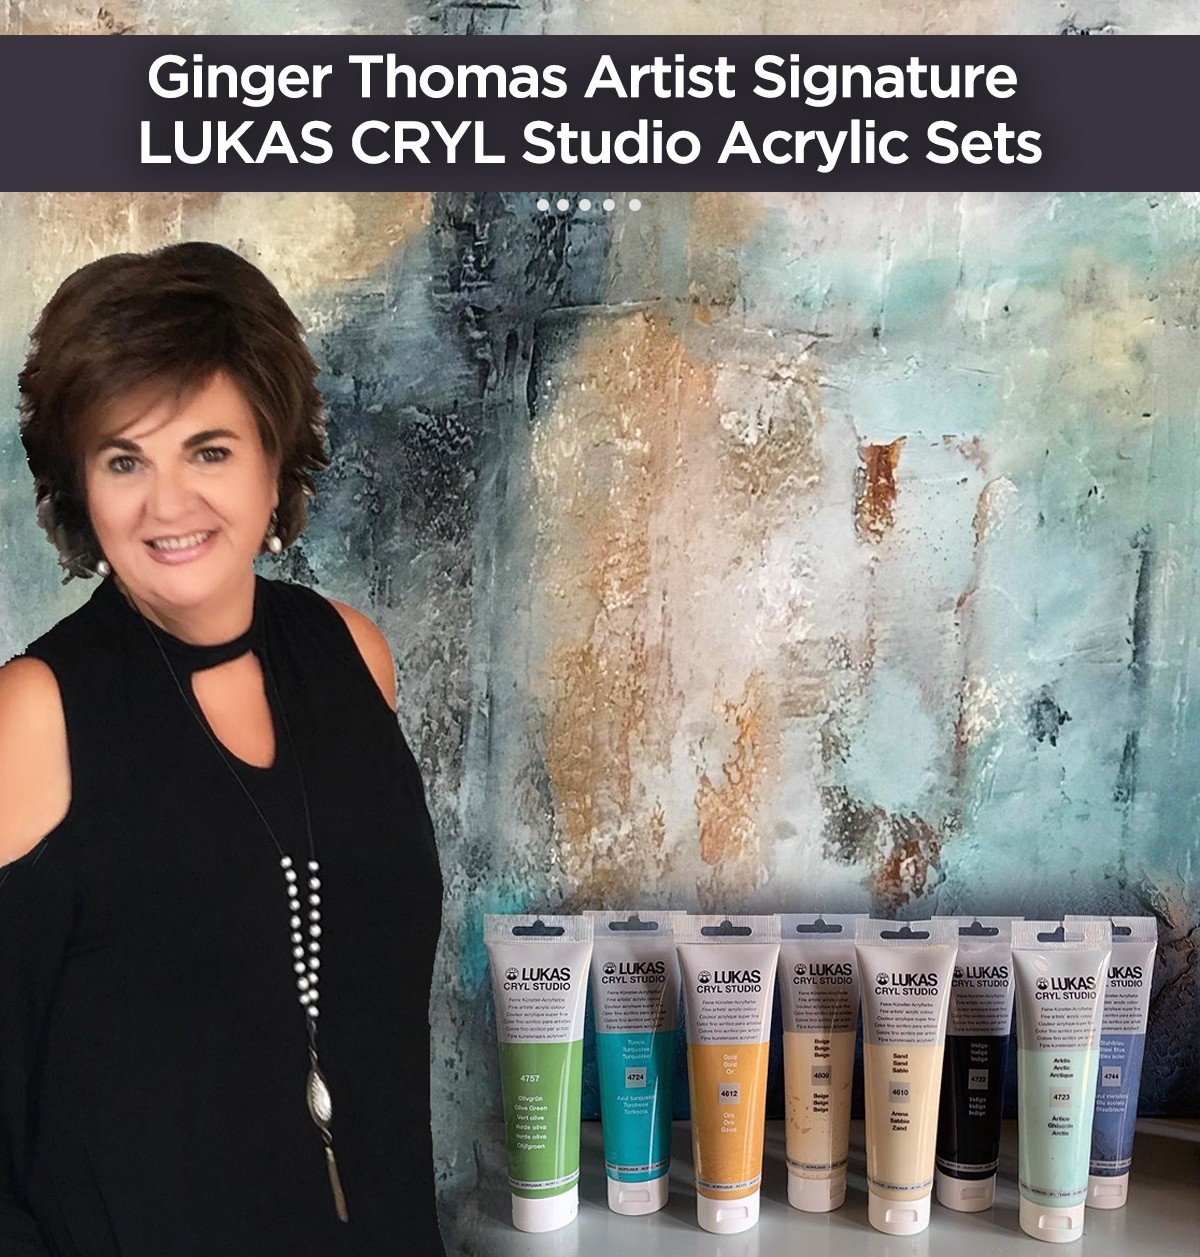 Ginger Thomas Signature LUKAS Cryl Studio Acrylic Sets